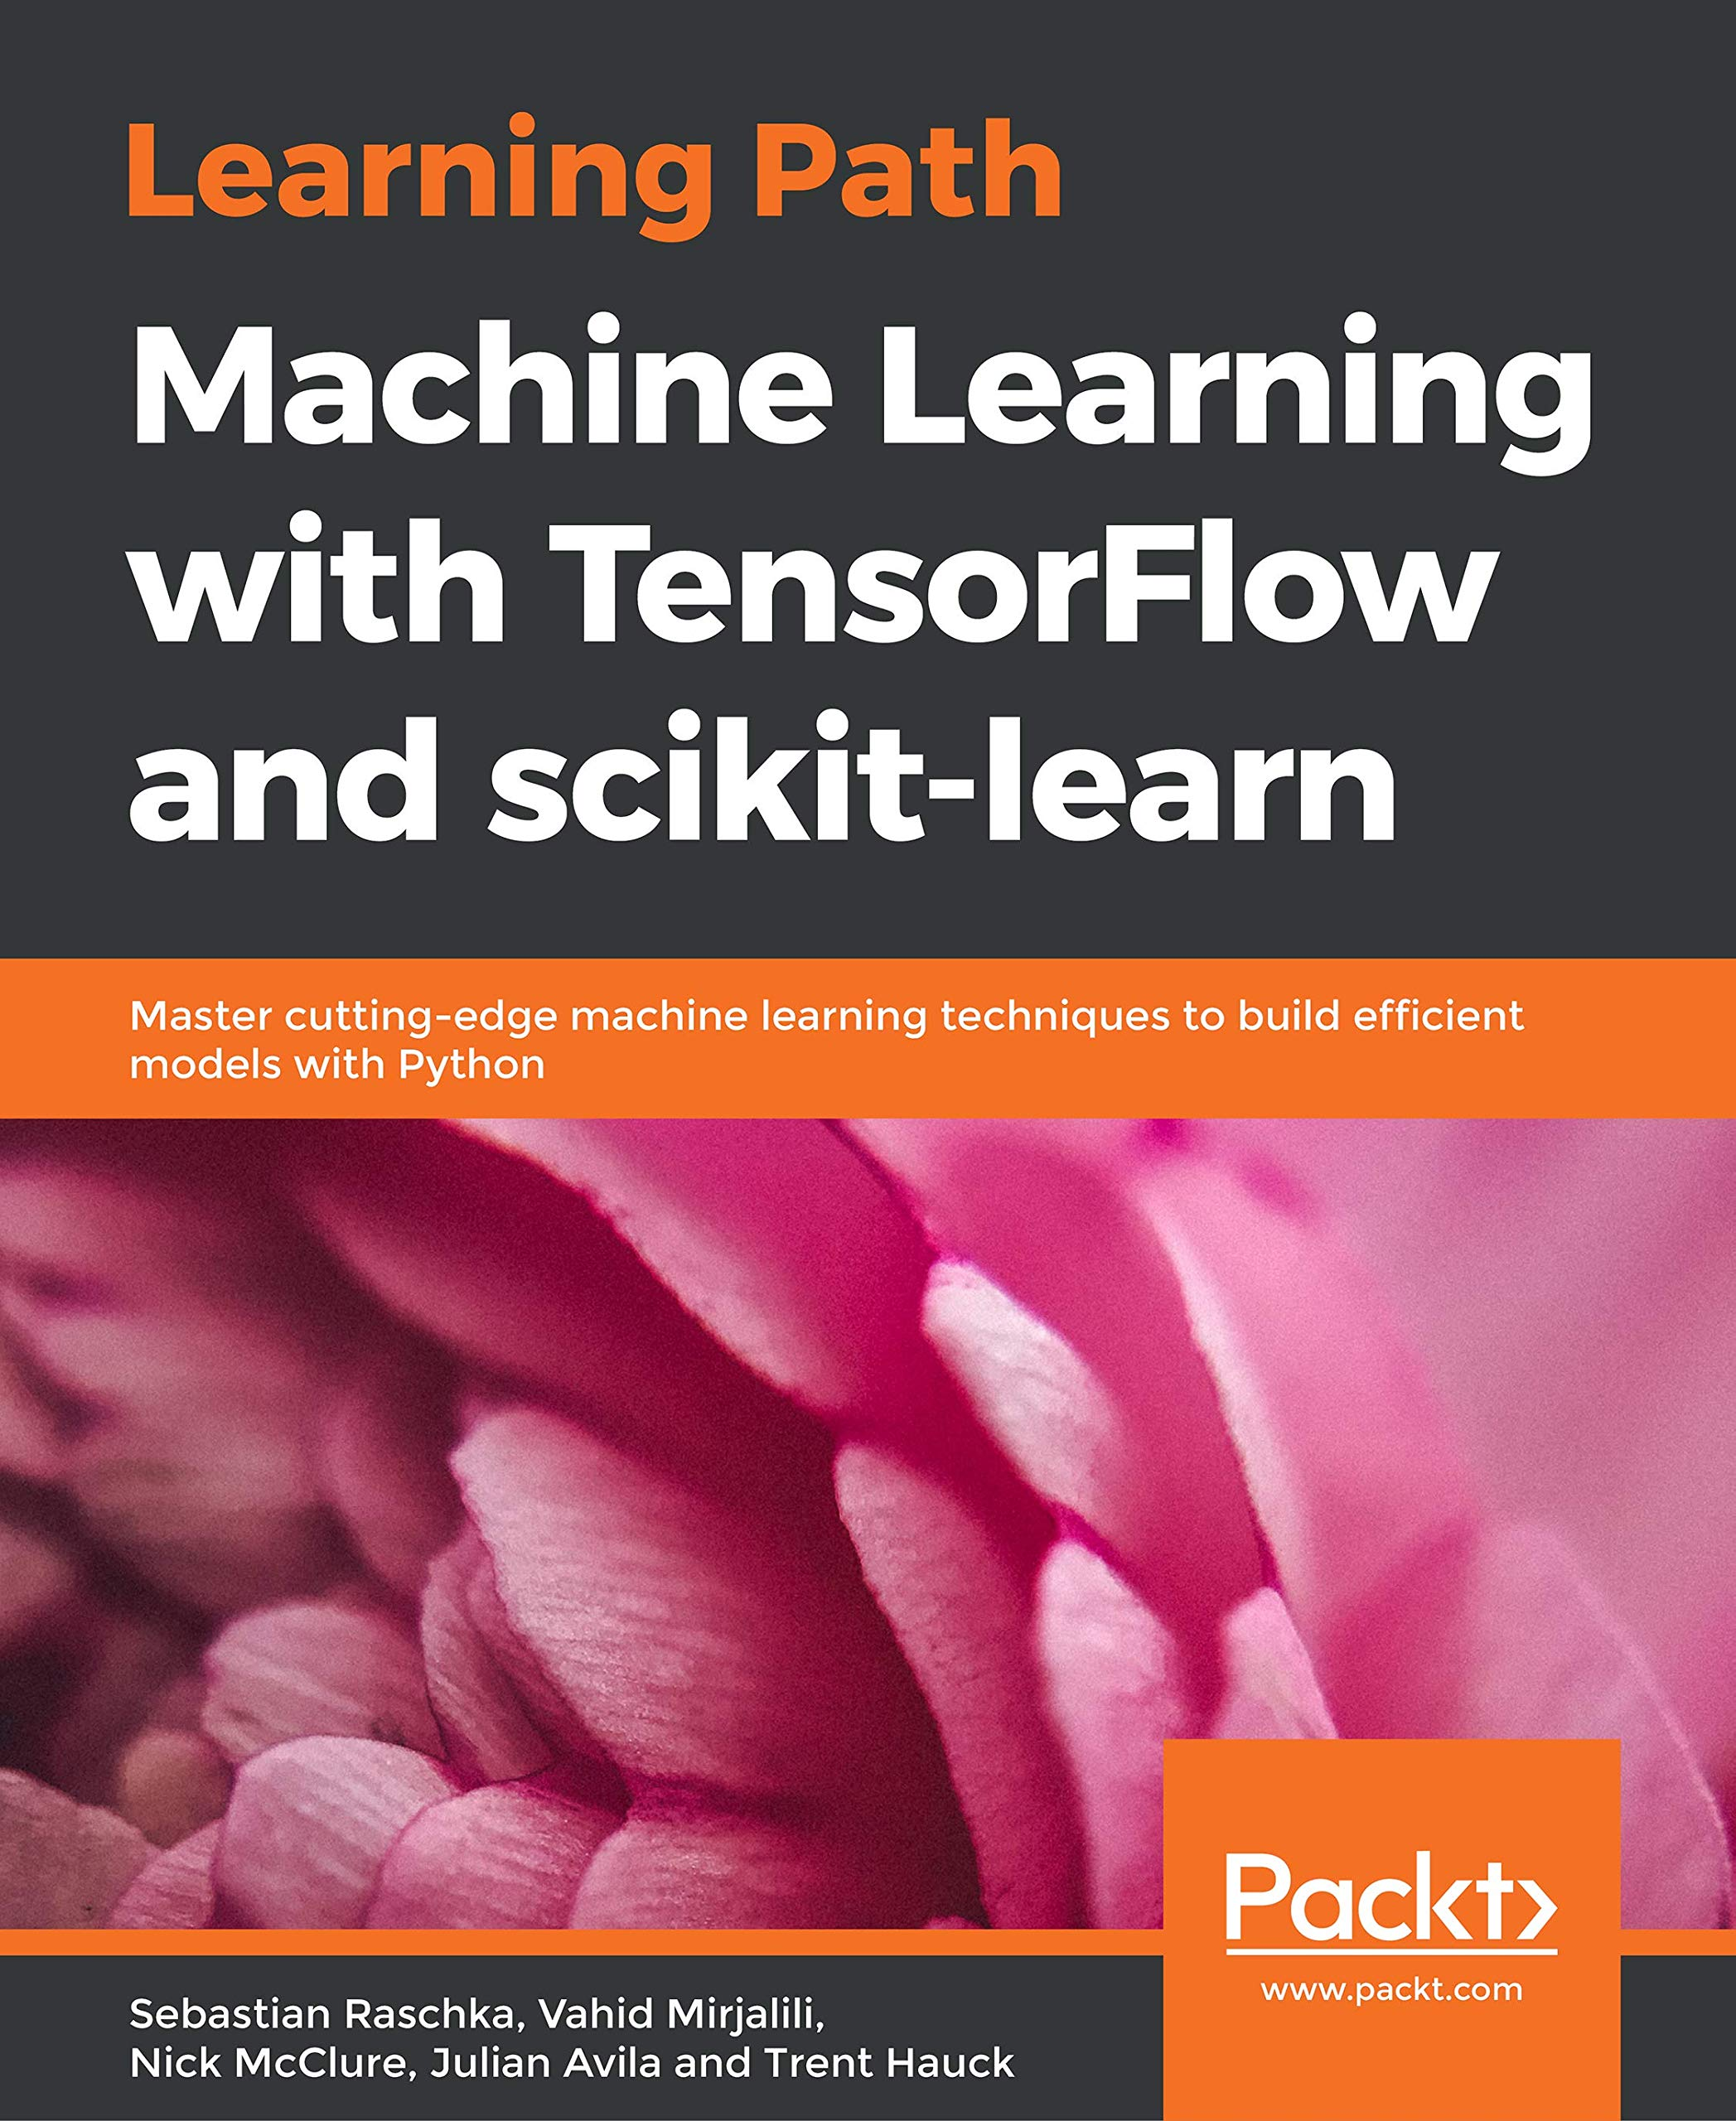 Amazon fr - Learning Path - Machine Learning with TensorFlow